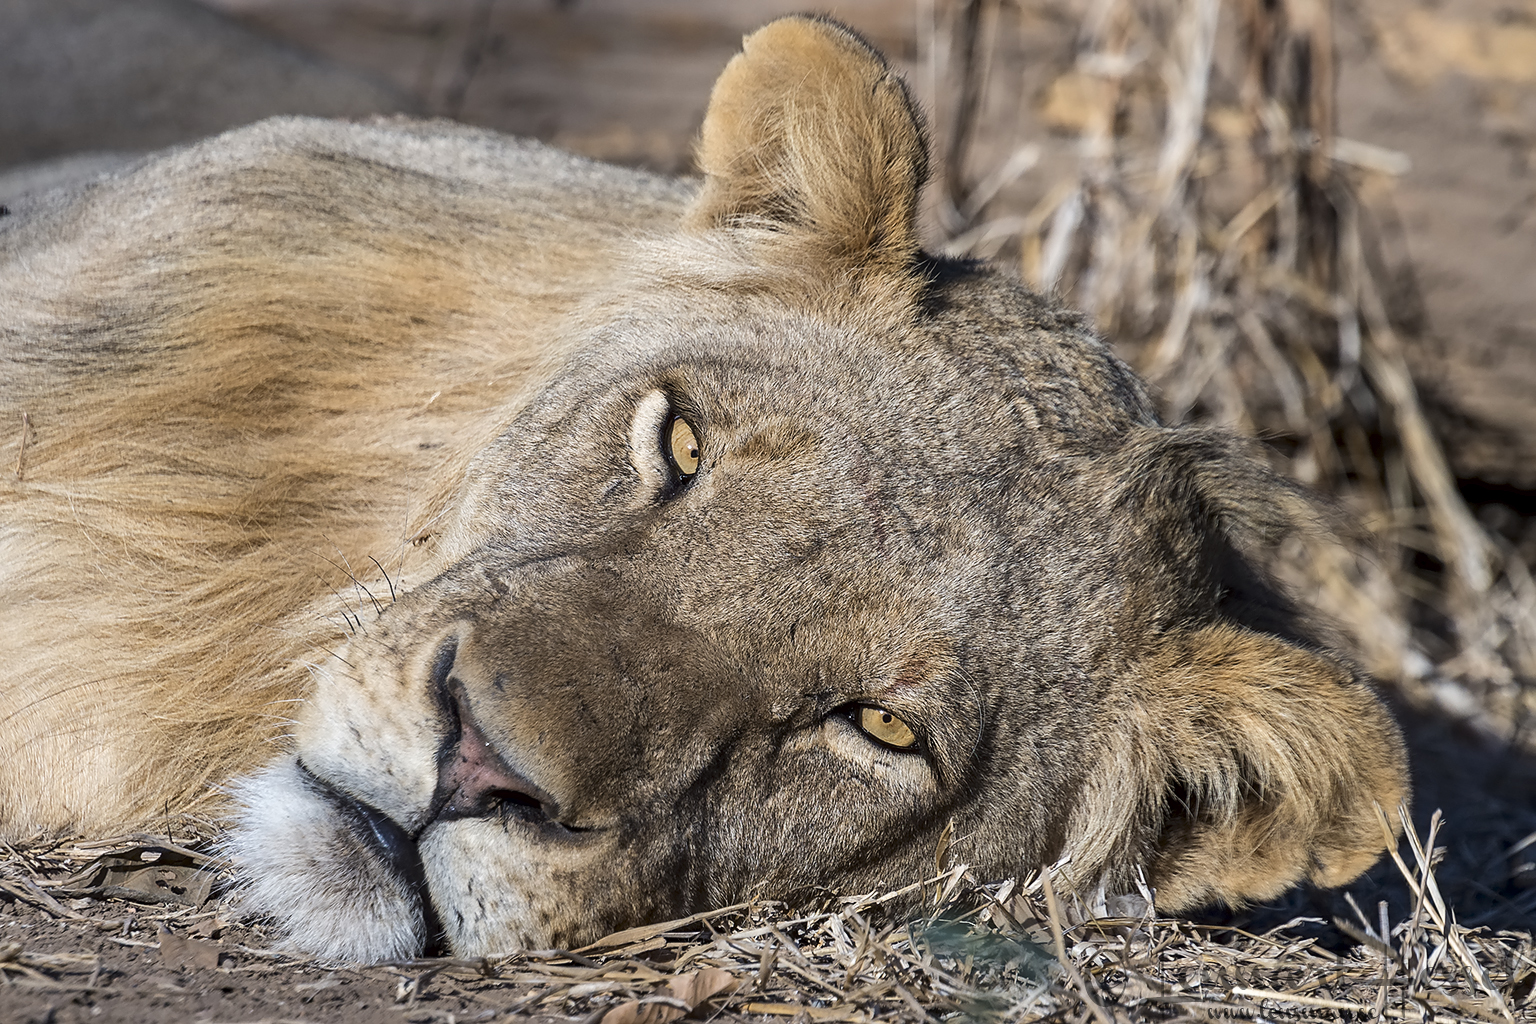 Sleepy lion giants Mana Pools National Park, Zimbabwe